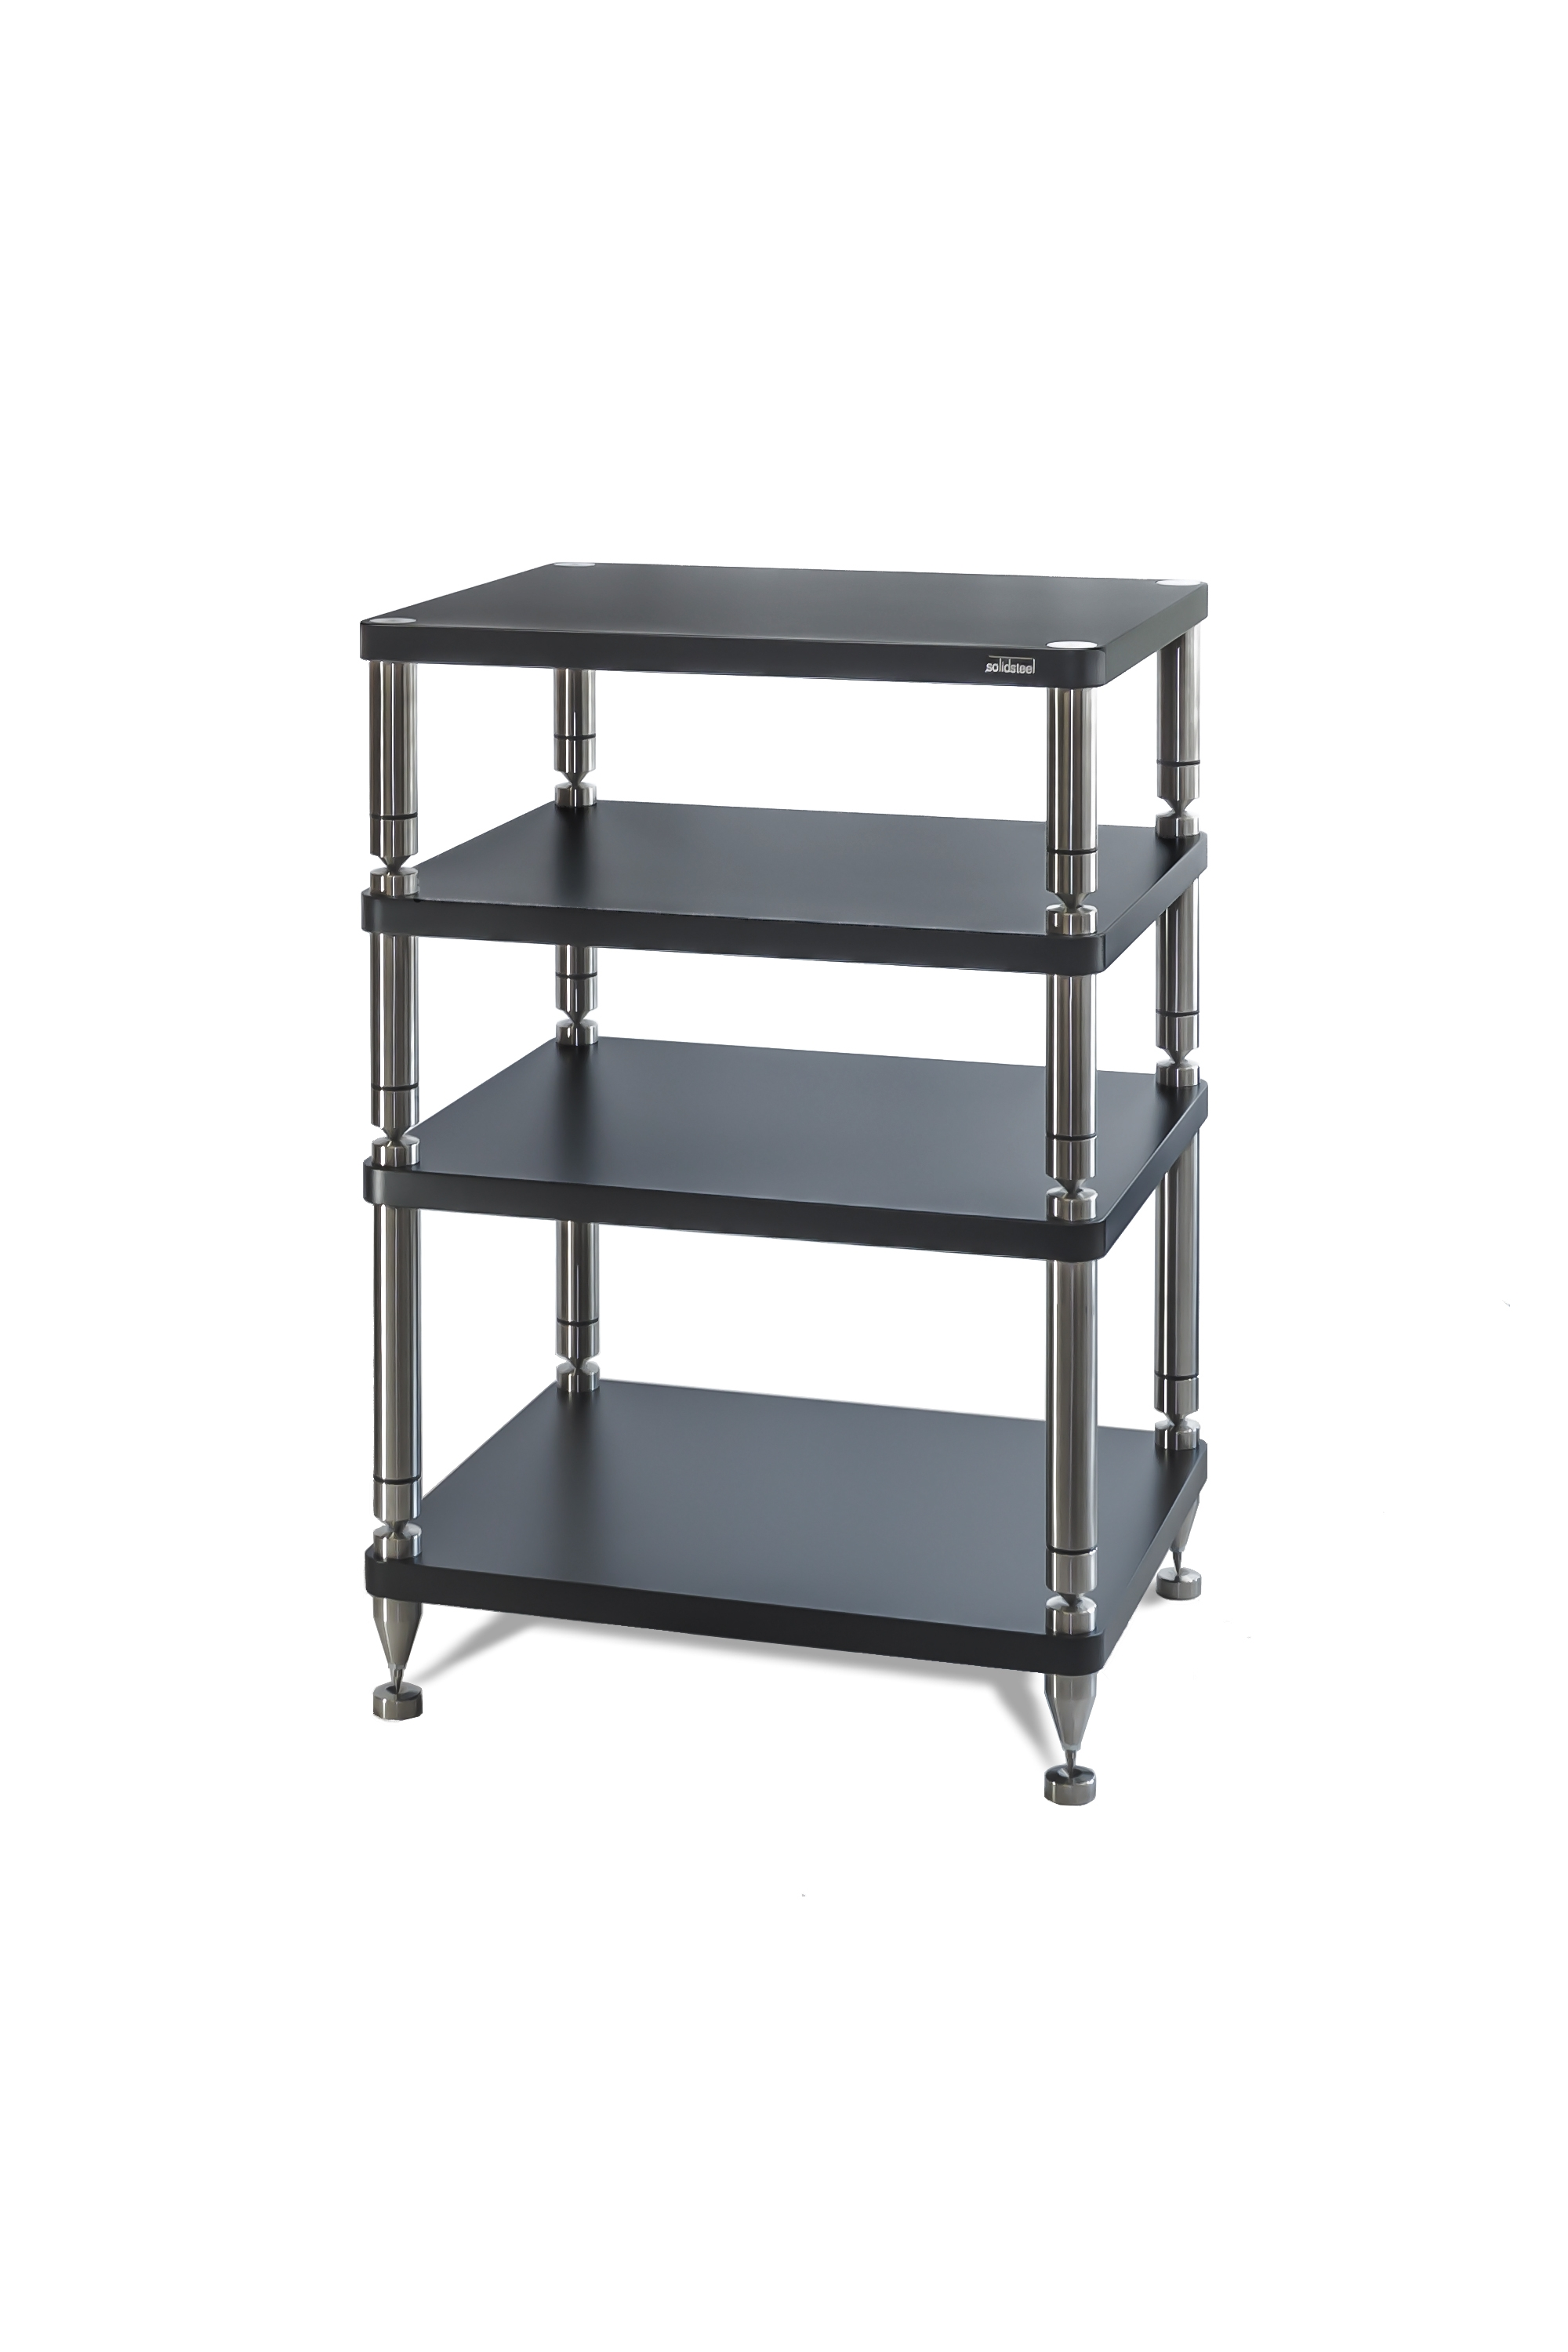 SolidSteel HY Series High End Audio Rack